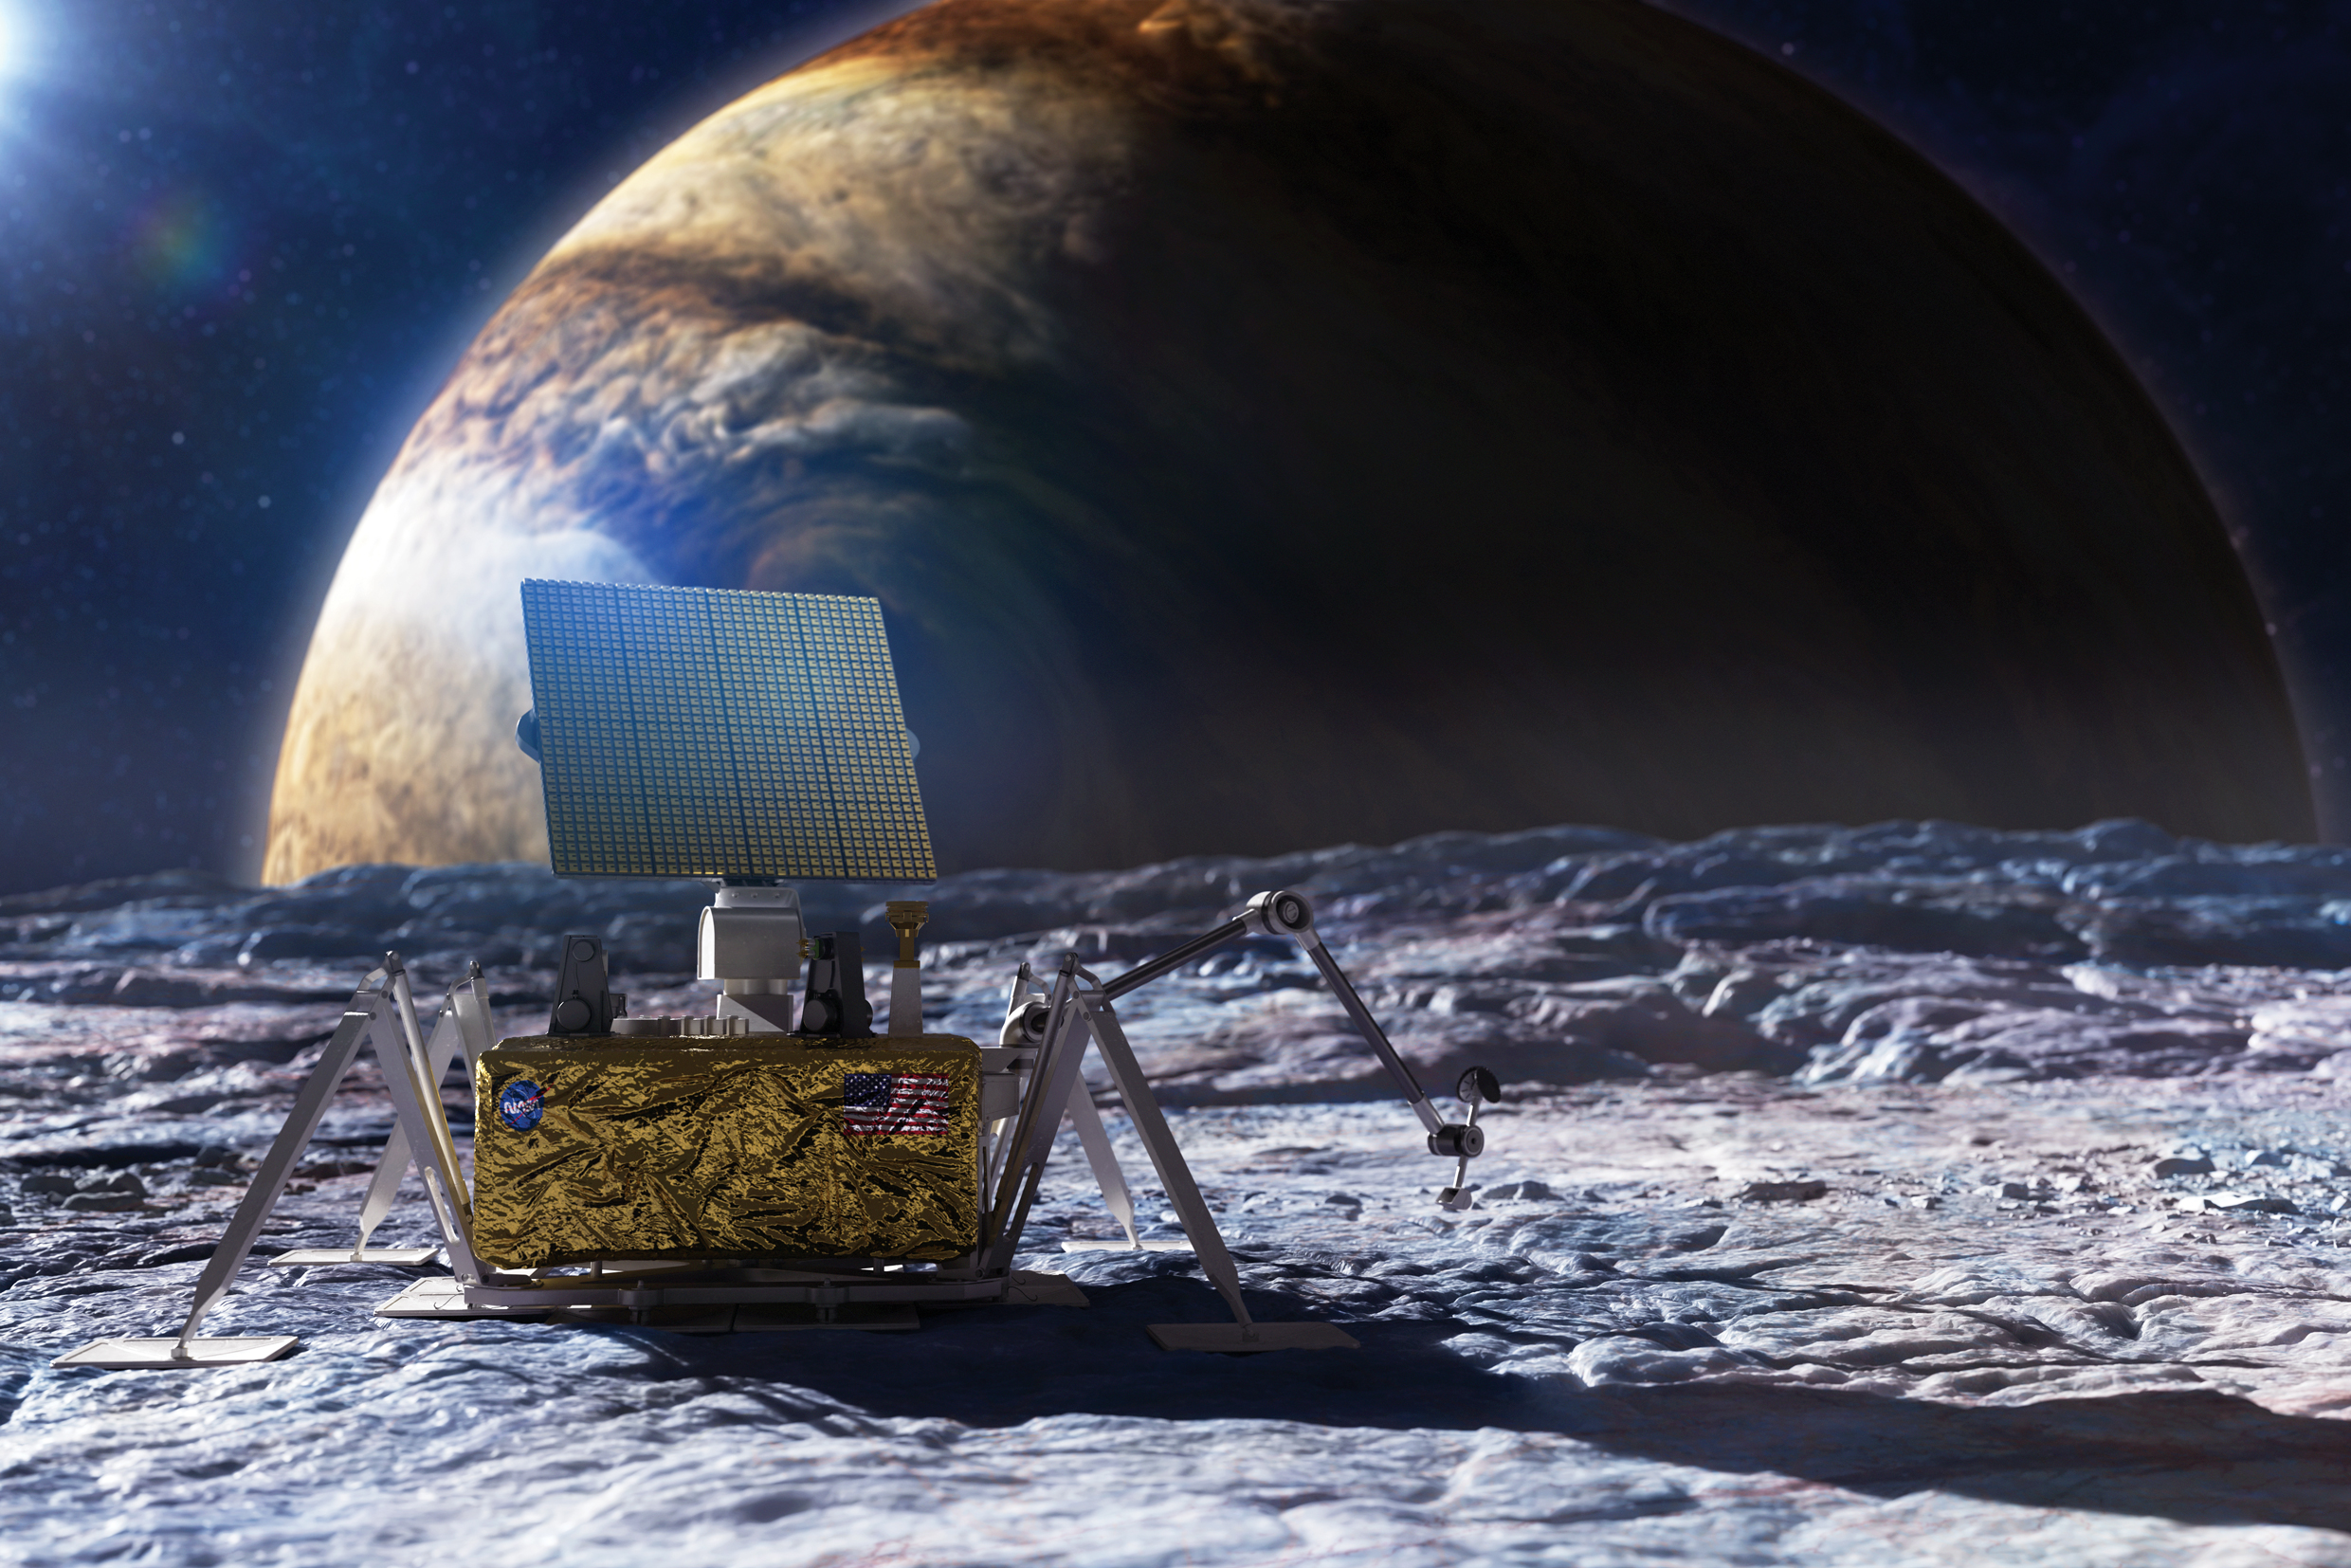 Image of an antenna on a moon with Jupiter in the background.